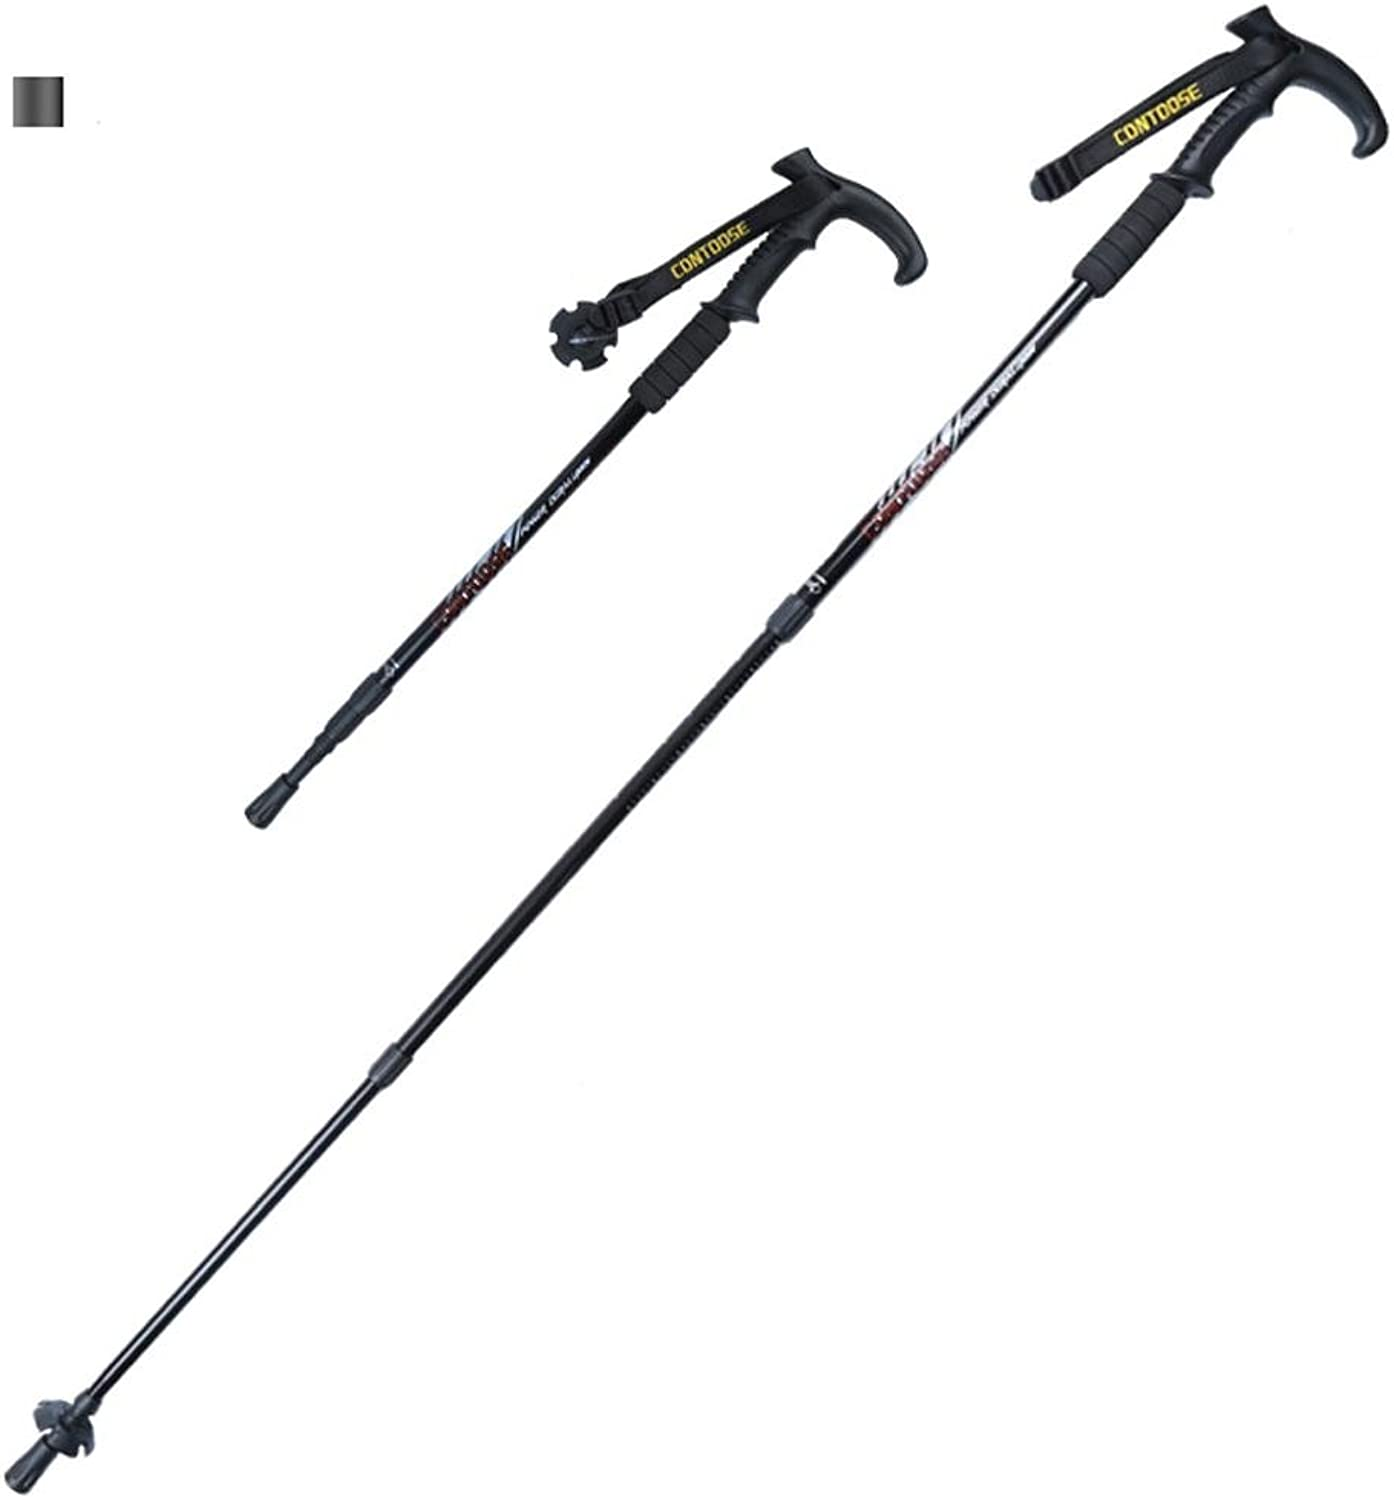 ROBAG Telescopic Folding Aluminum Hiking Stick Walking Poles, Rubber T Handle Outdoor Equipment